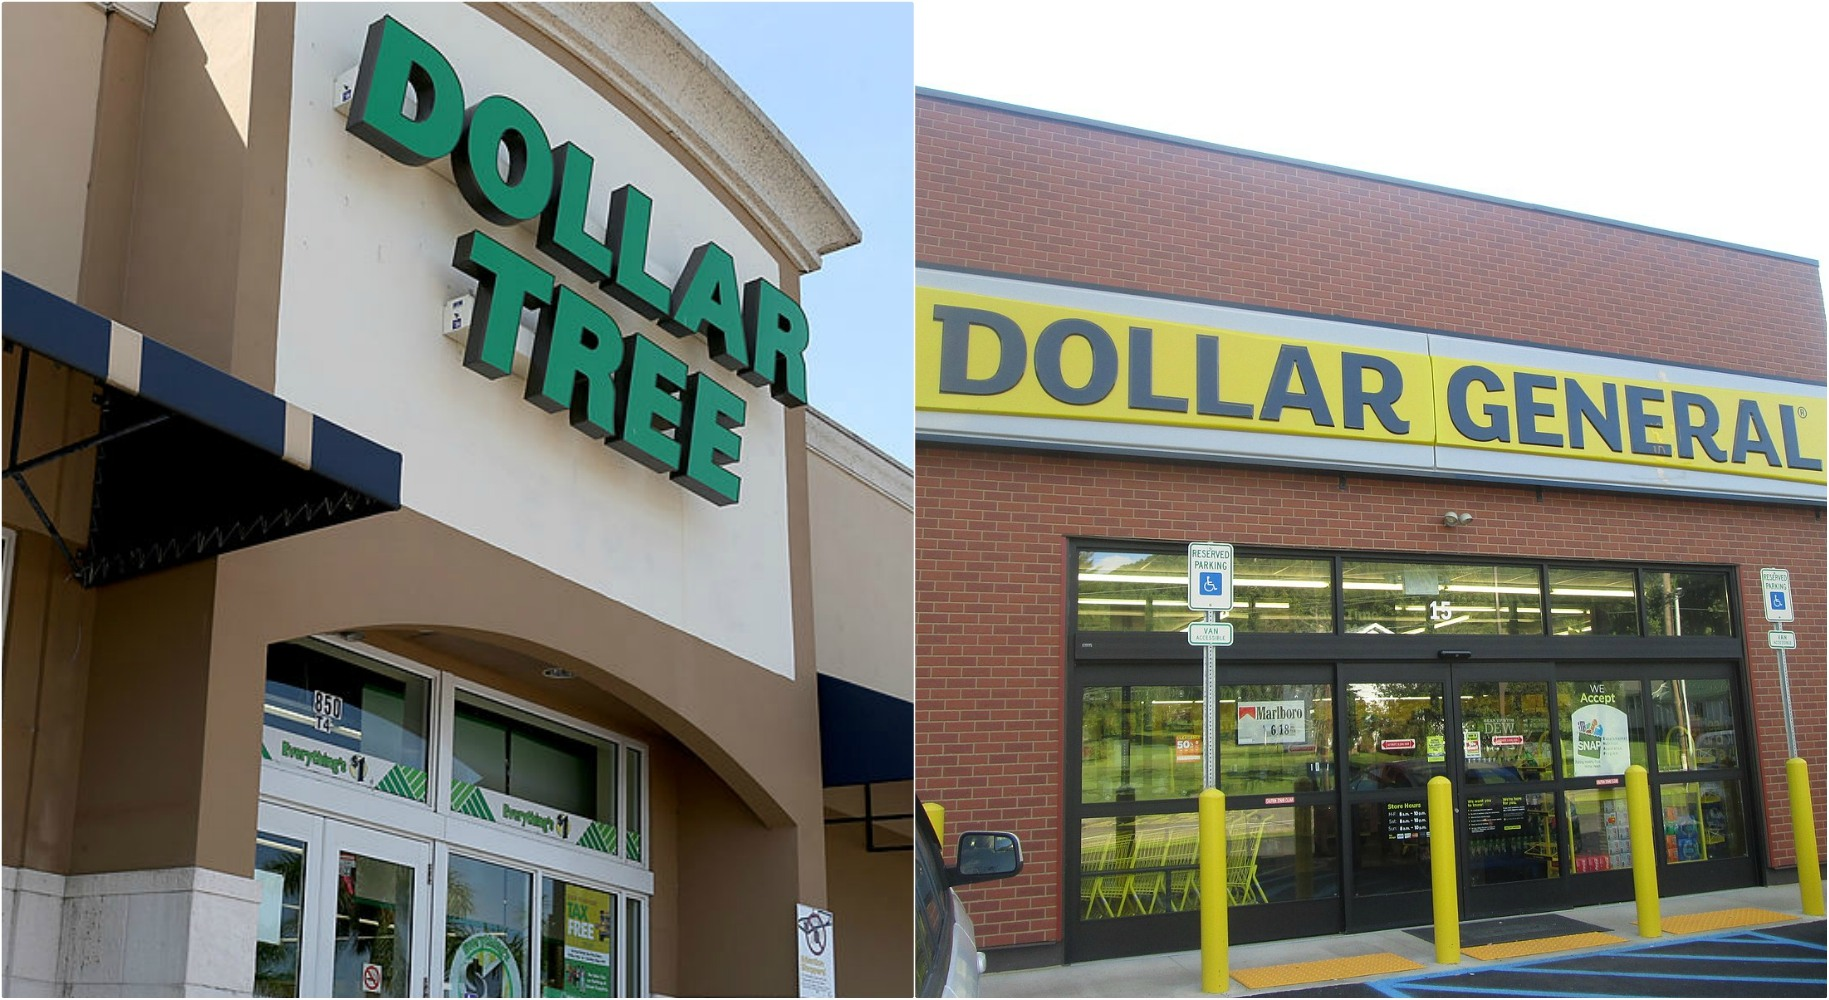 Dollar Tree vs  Dollar General: The Store With the Better Values May